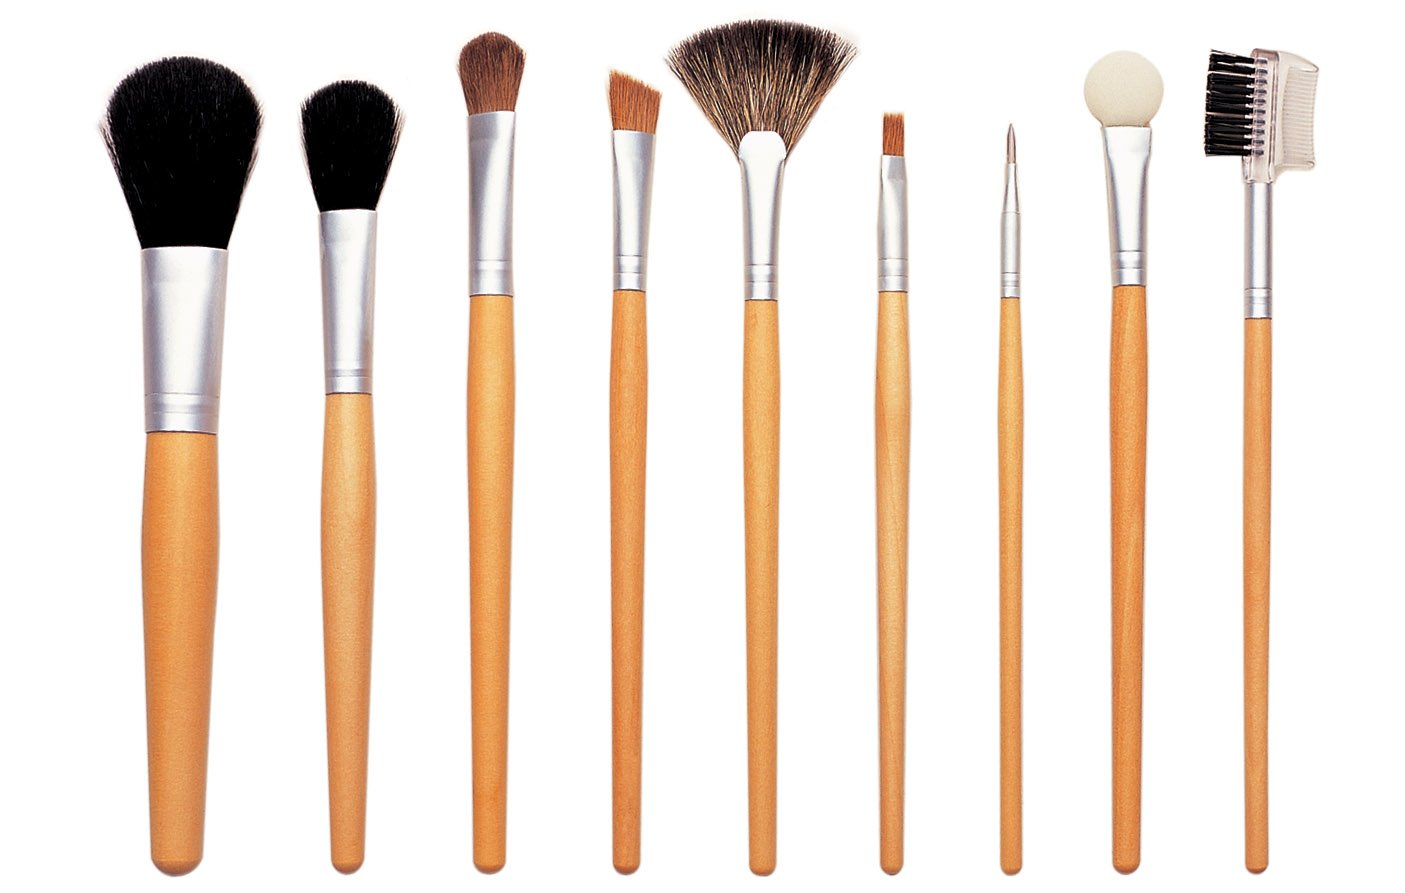 5 Easy Ways To Do Your Makeup Without Brushes